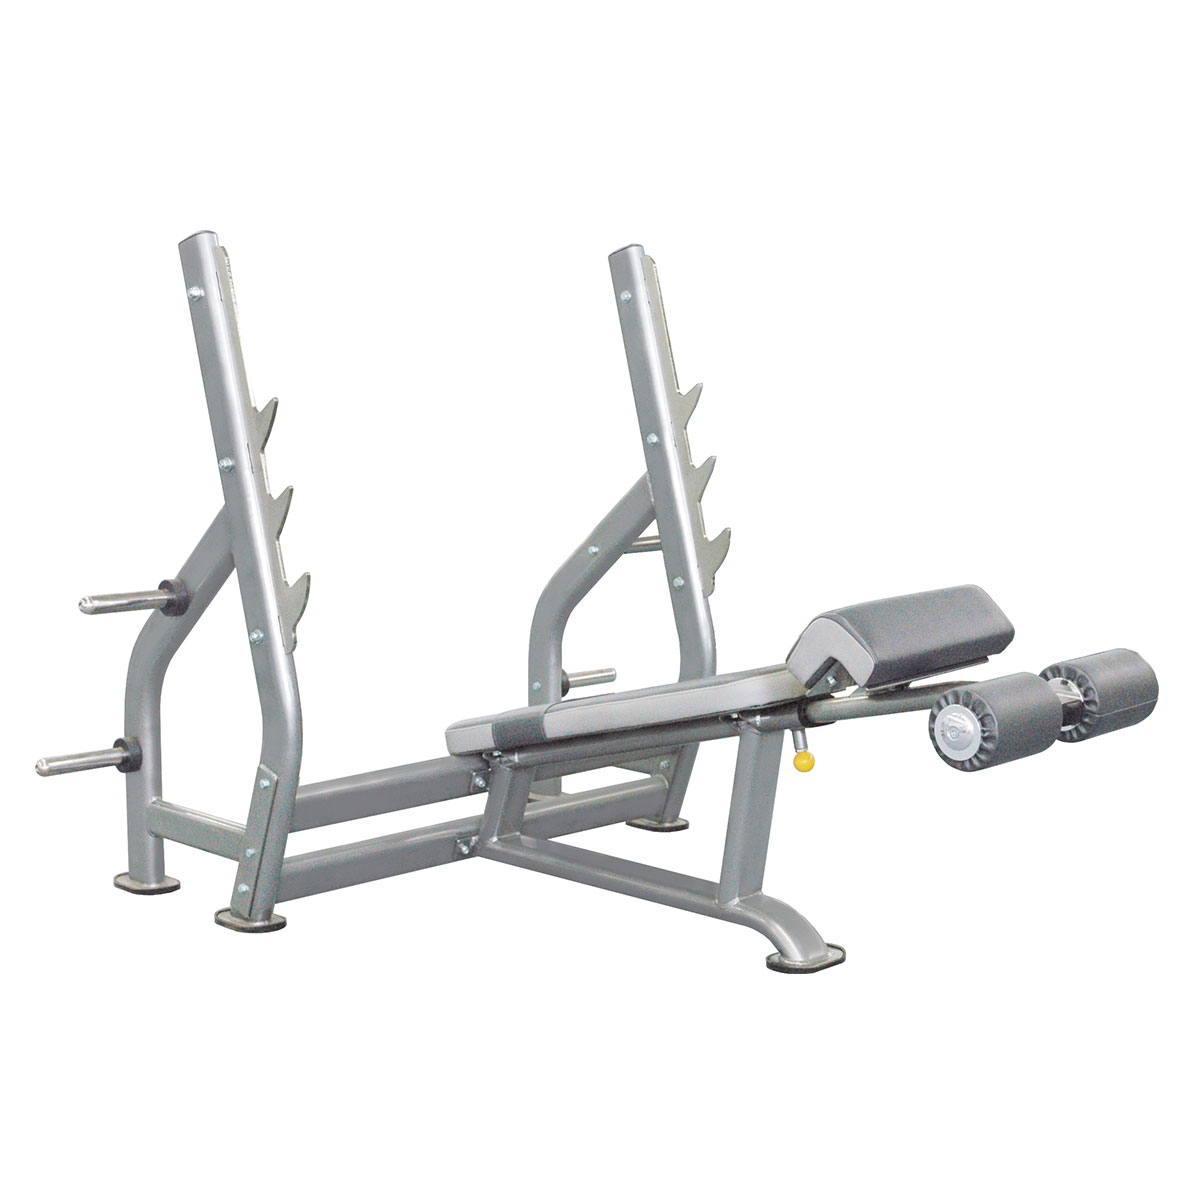 Olympic Decline Bench - Impulse Wellness